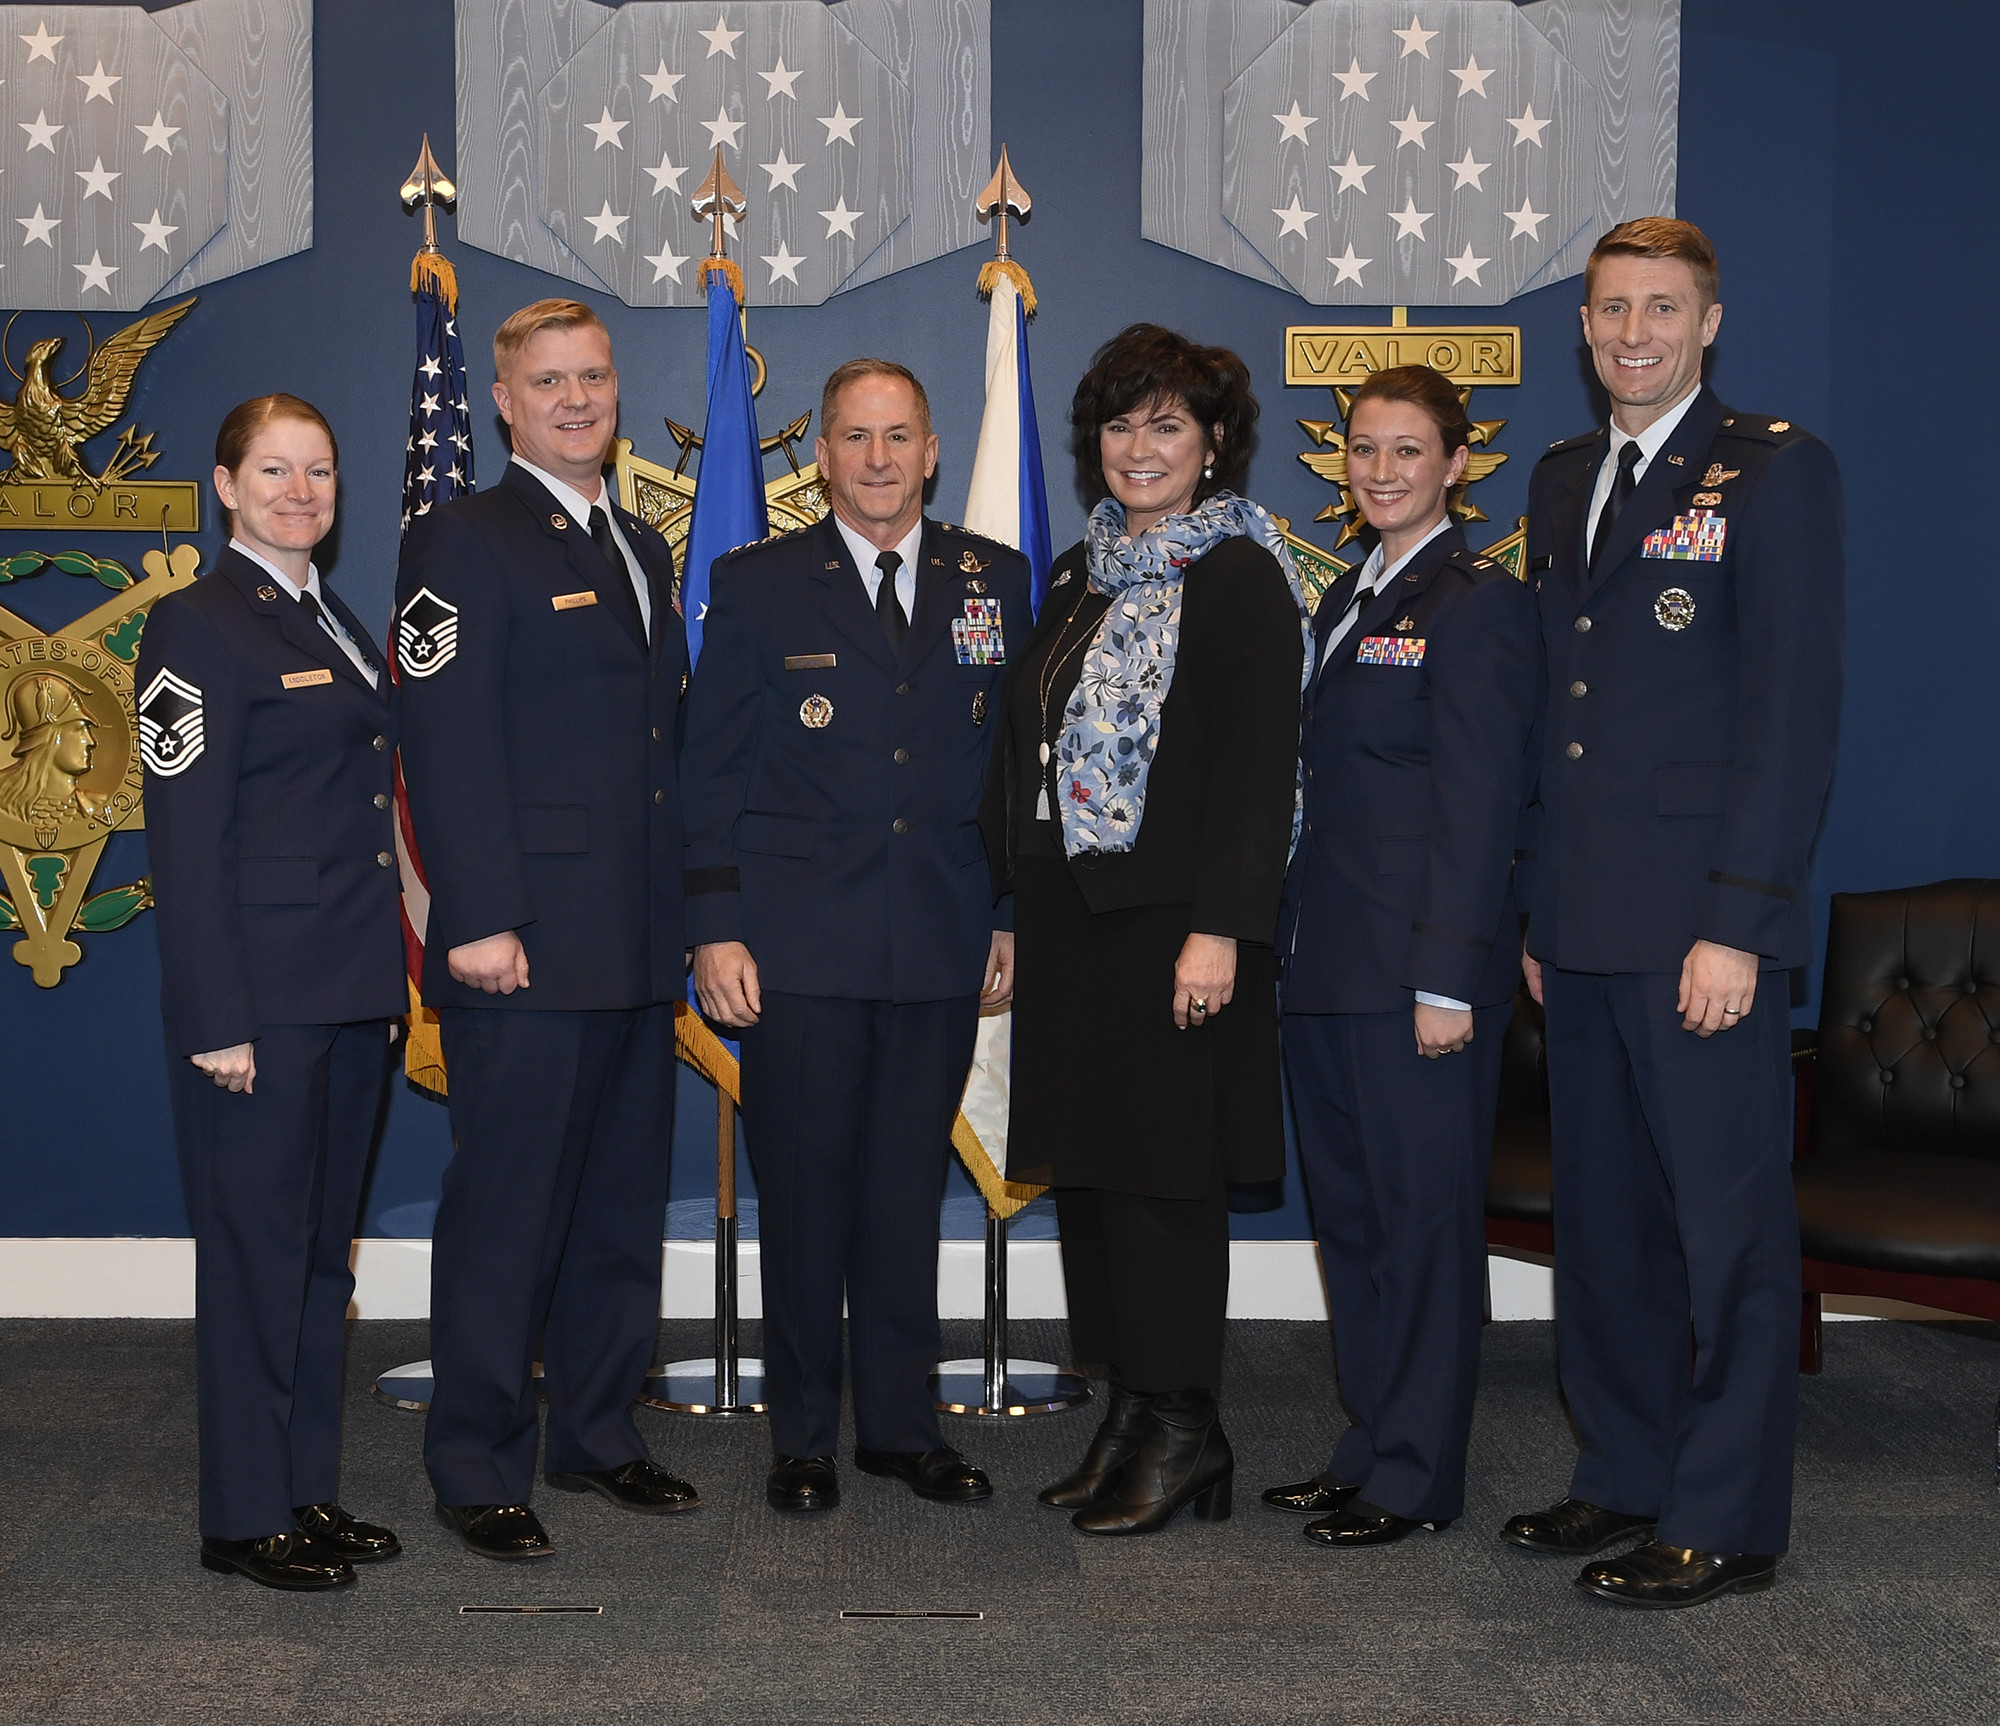 Pentagon hosts Sijan award presentation, first-ever resiliency event